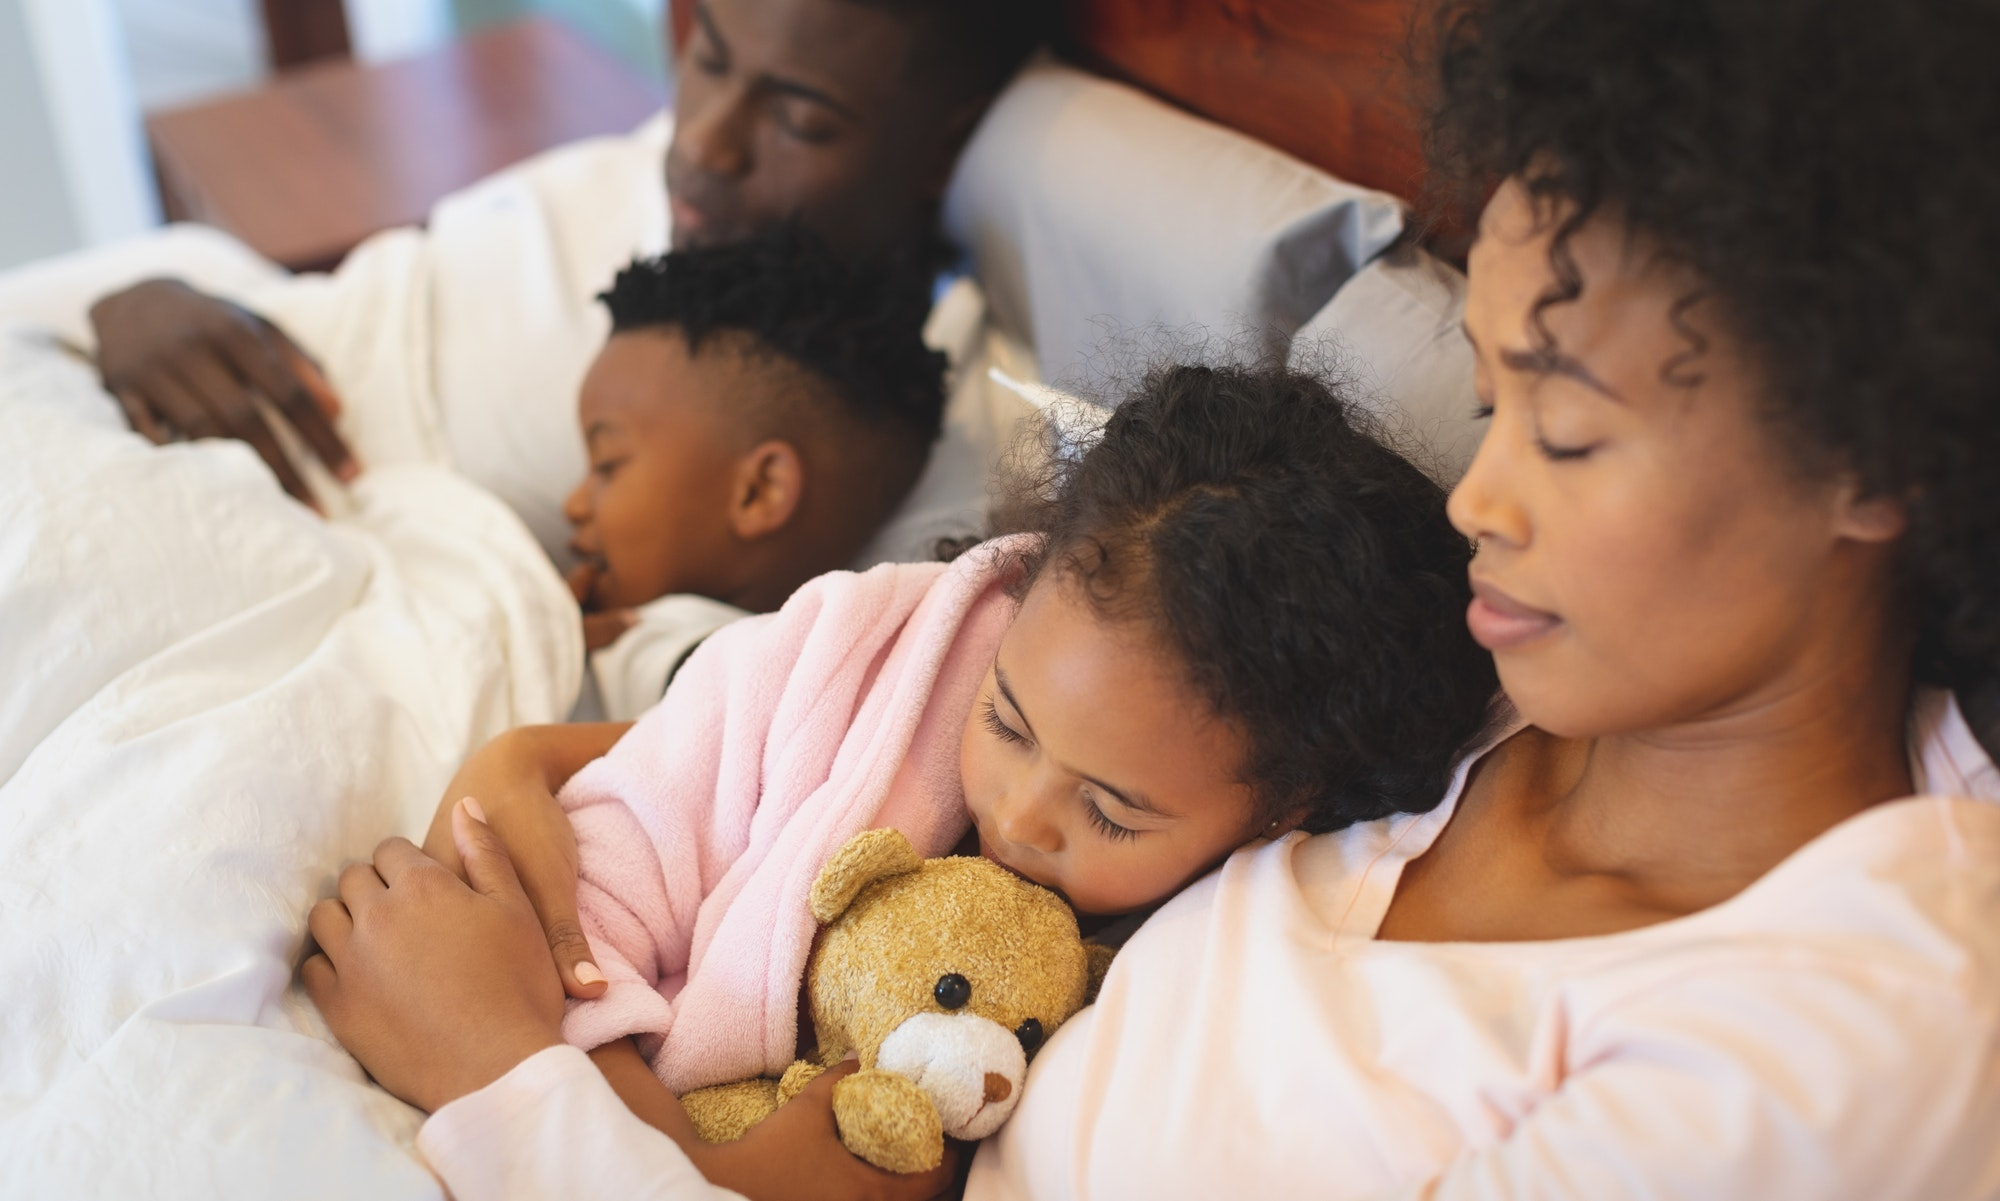 Close-up of African American family sleeping together on bed in bedroom at home